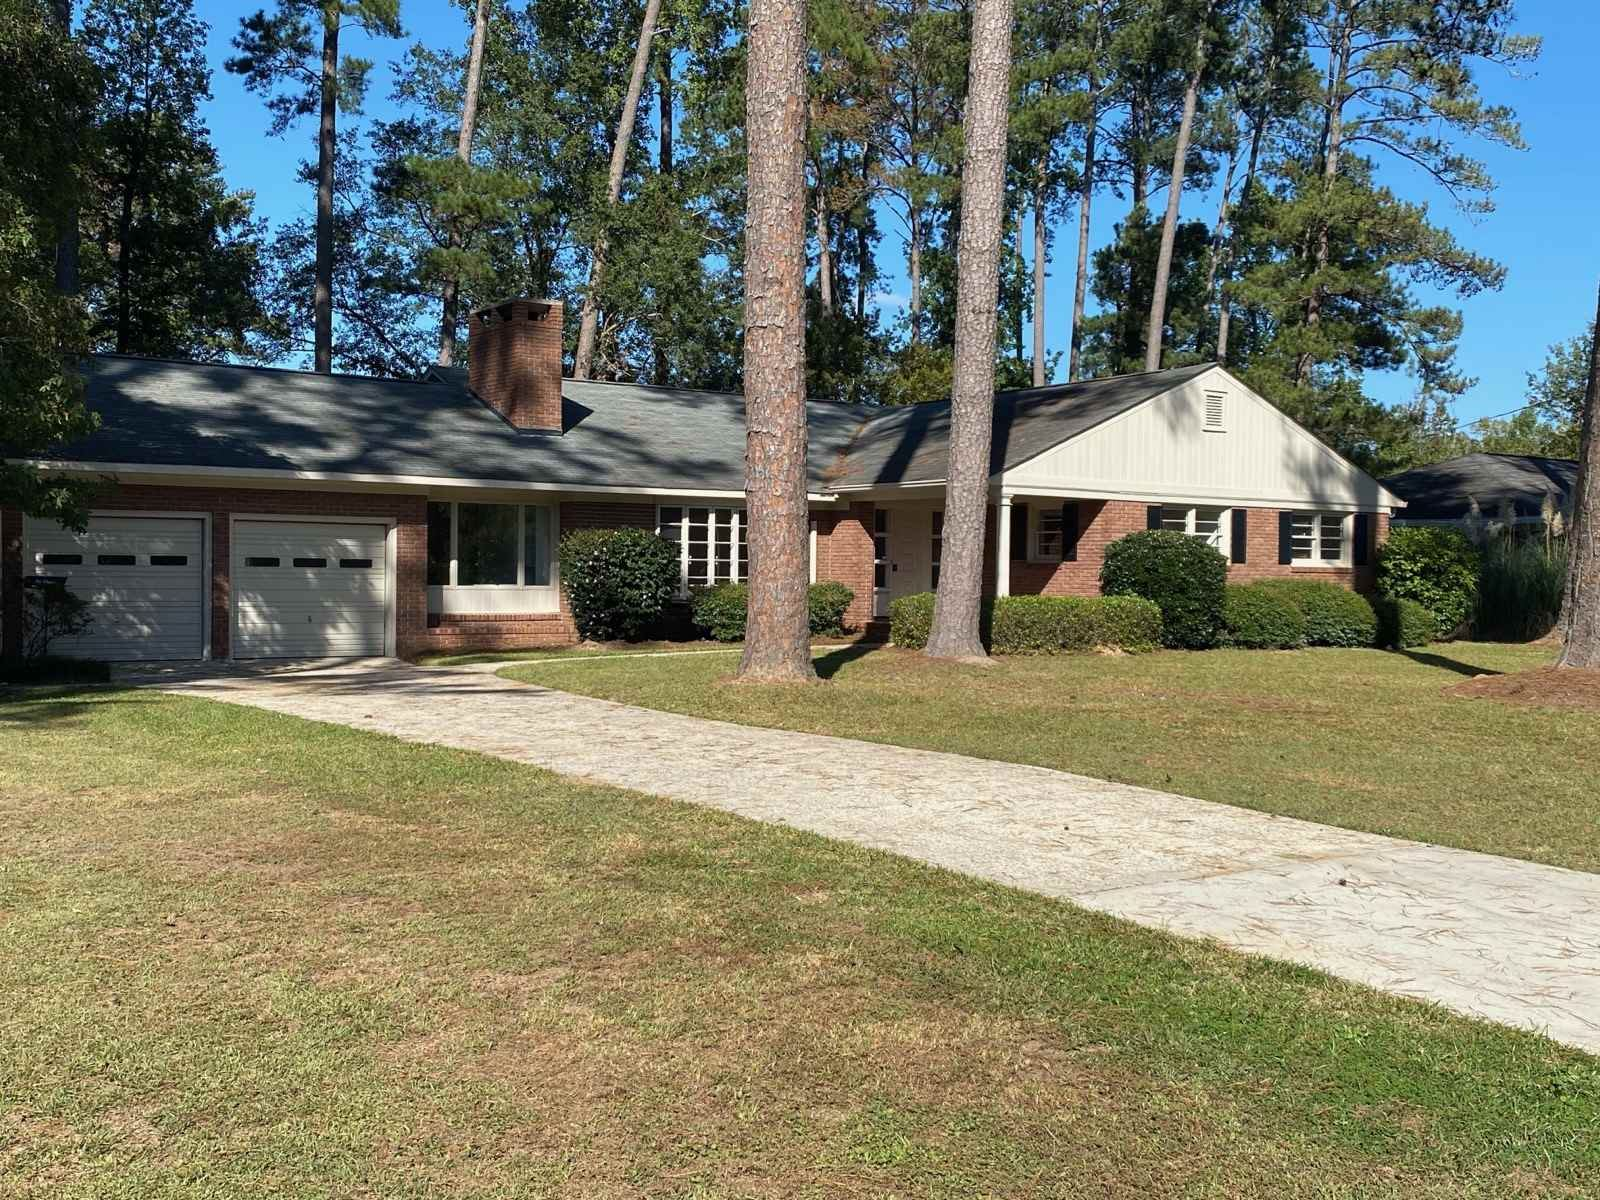 2789 Sheffield Rd, Macon, GA 31204 - MLS#: 8875281